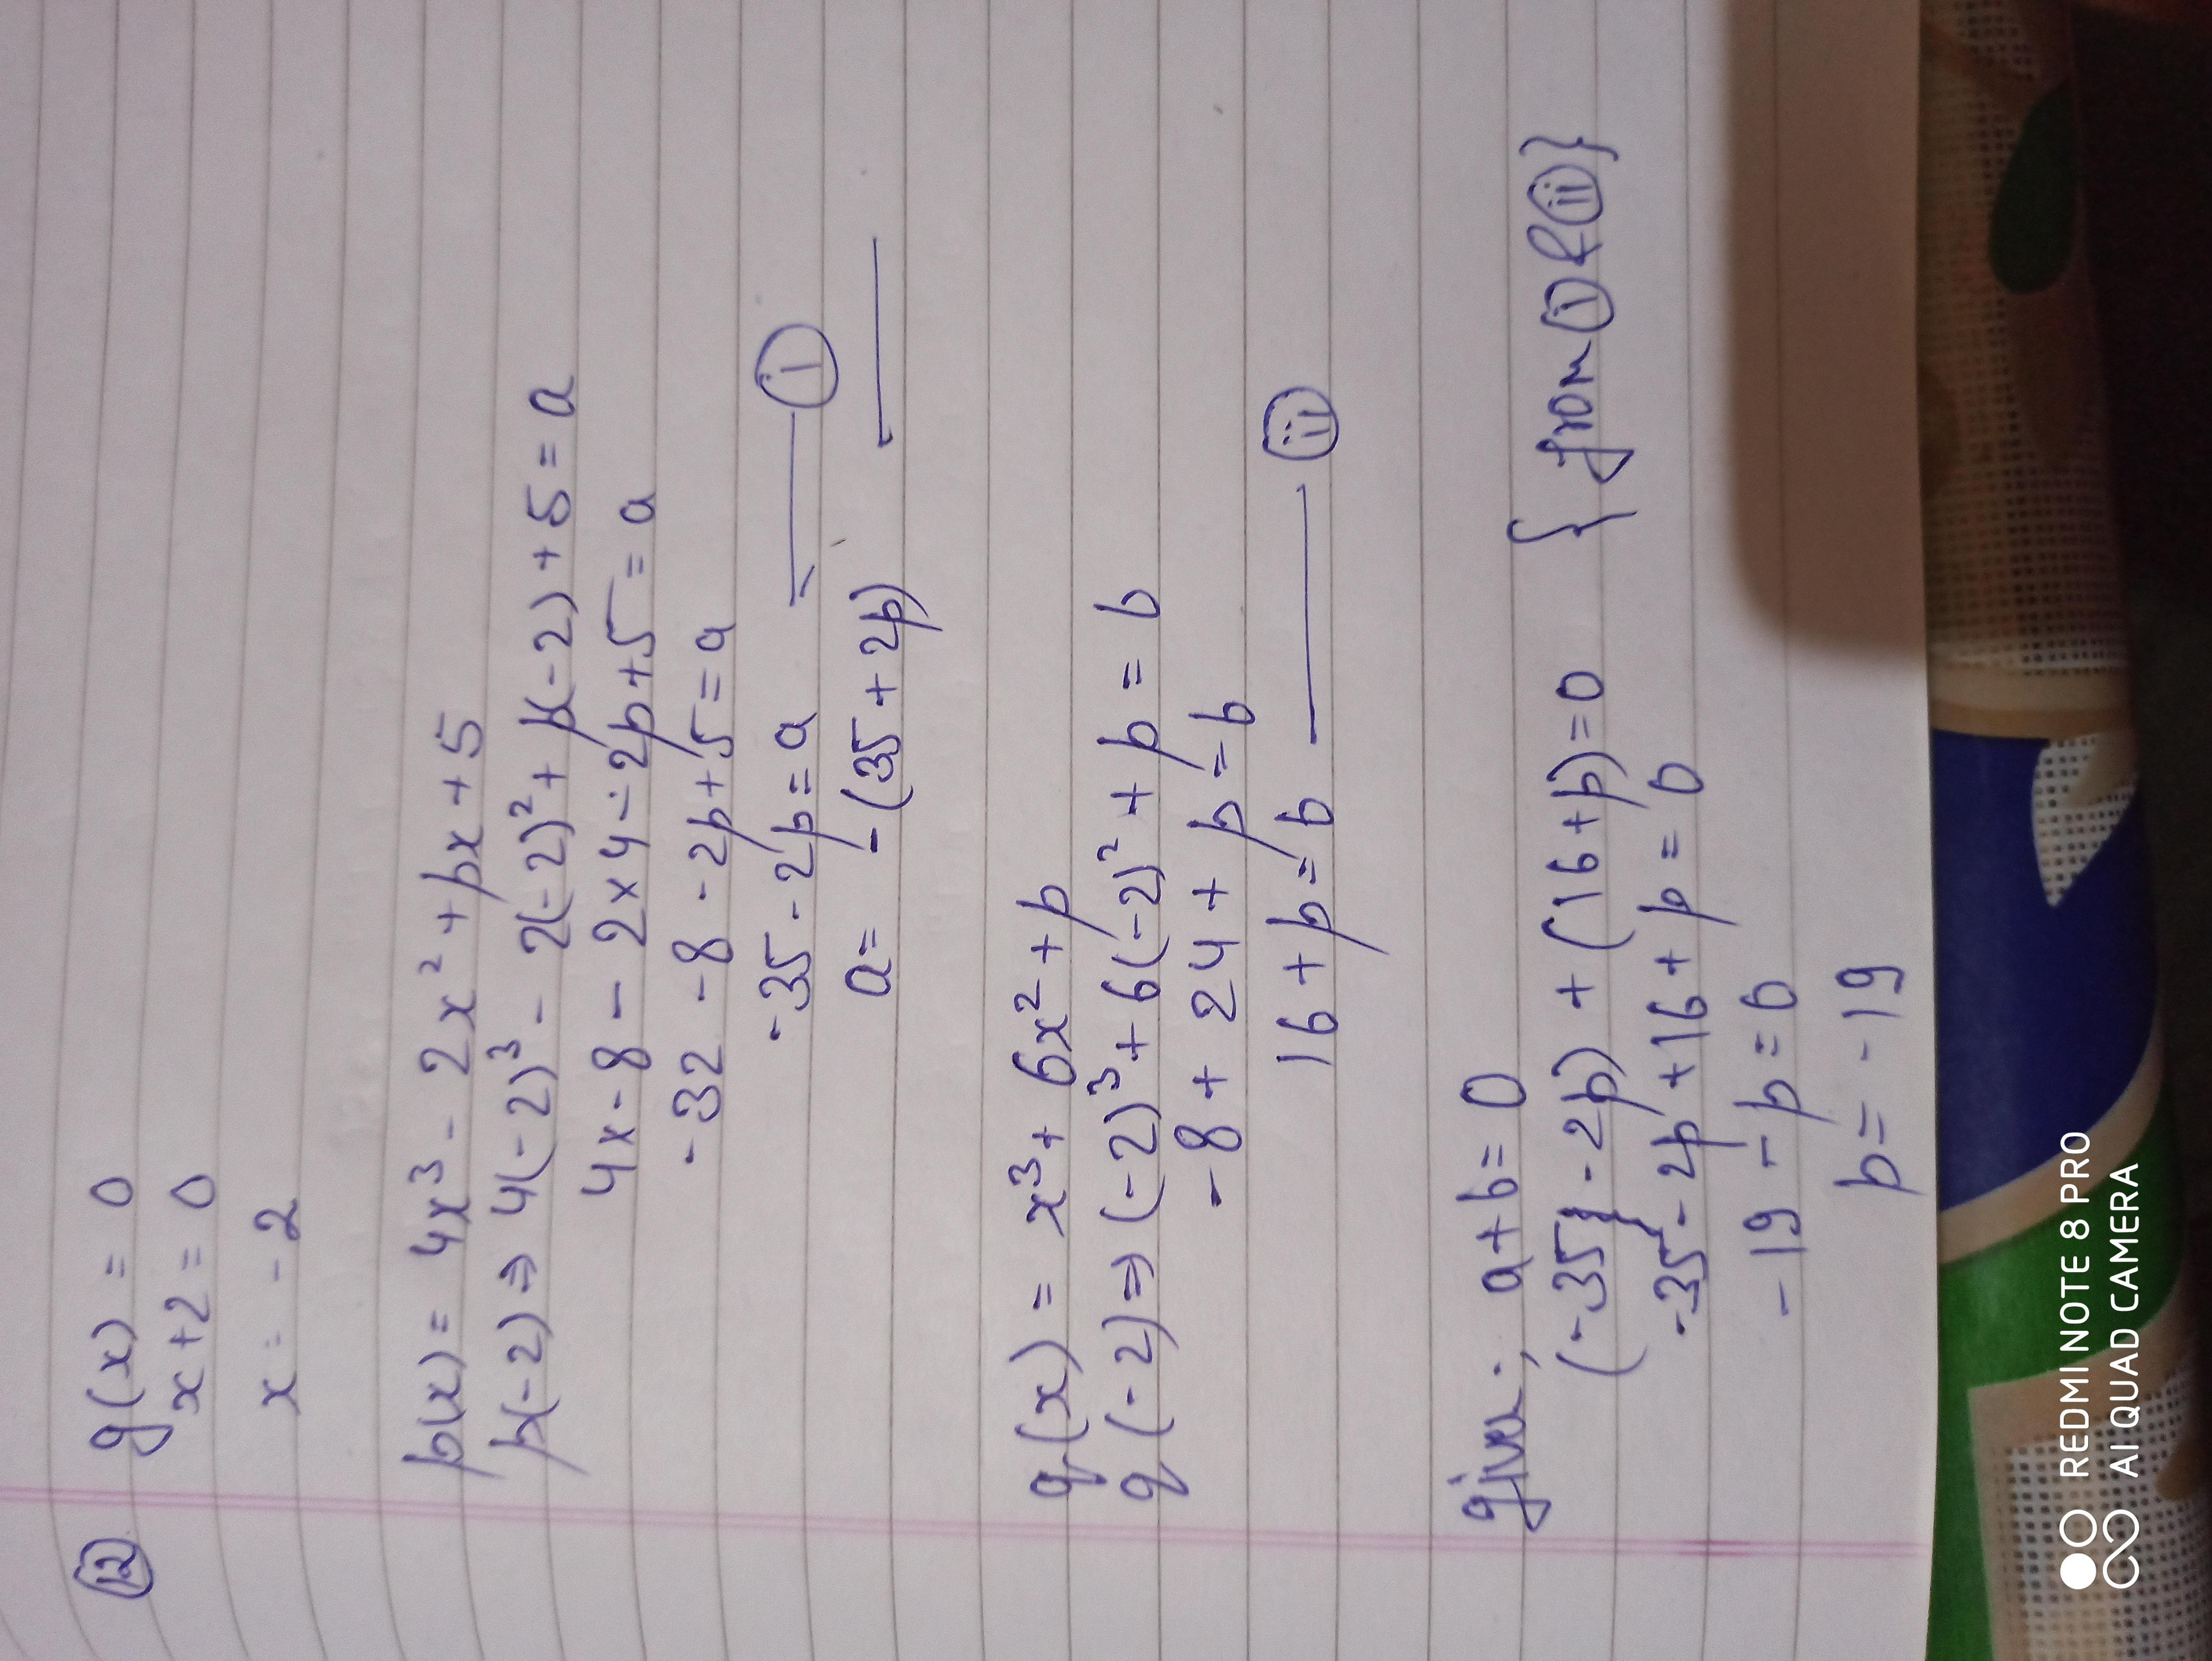 The Polynomials P(x)=4x^3-2x^2+px+5 And G(x)=x^3+6x^2+p